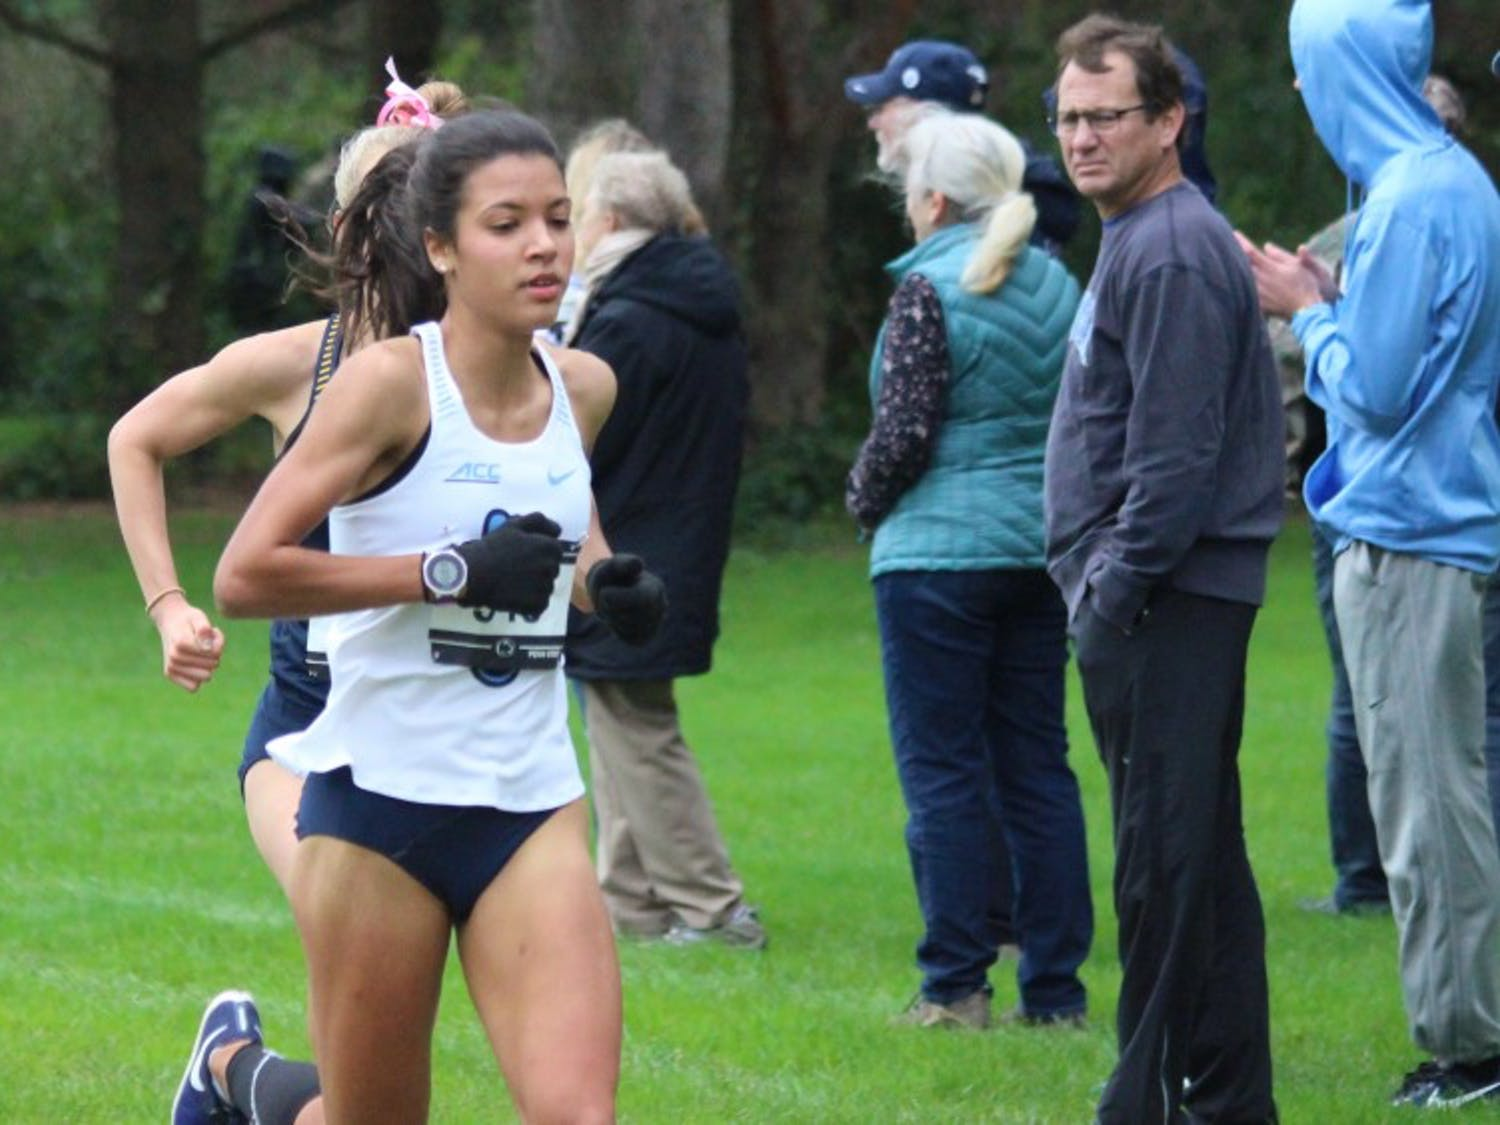 UNC first-year cross country runner Enyaeva Michelin. Photo courtesy of UNC athletic department.